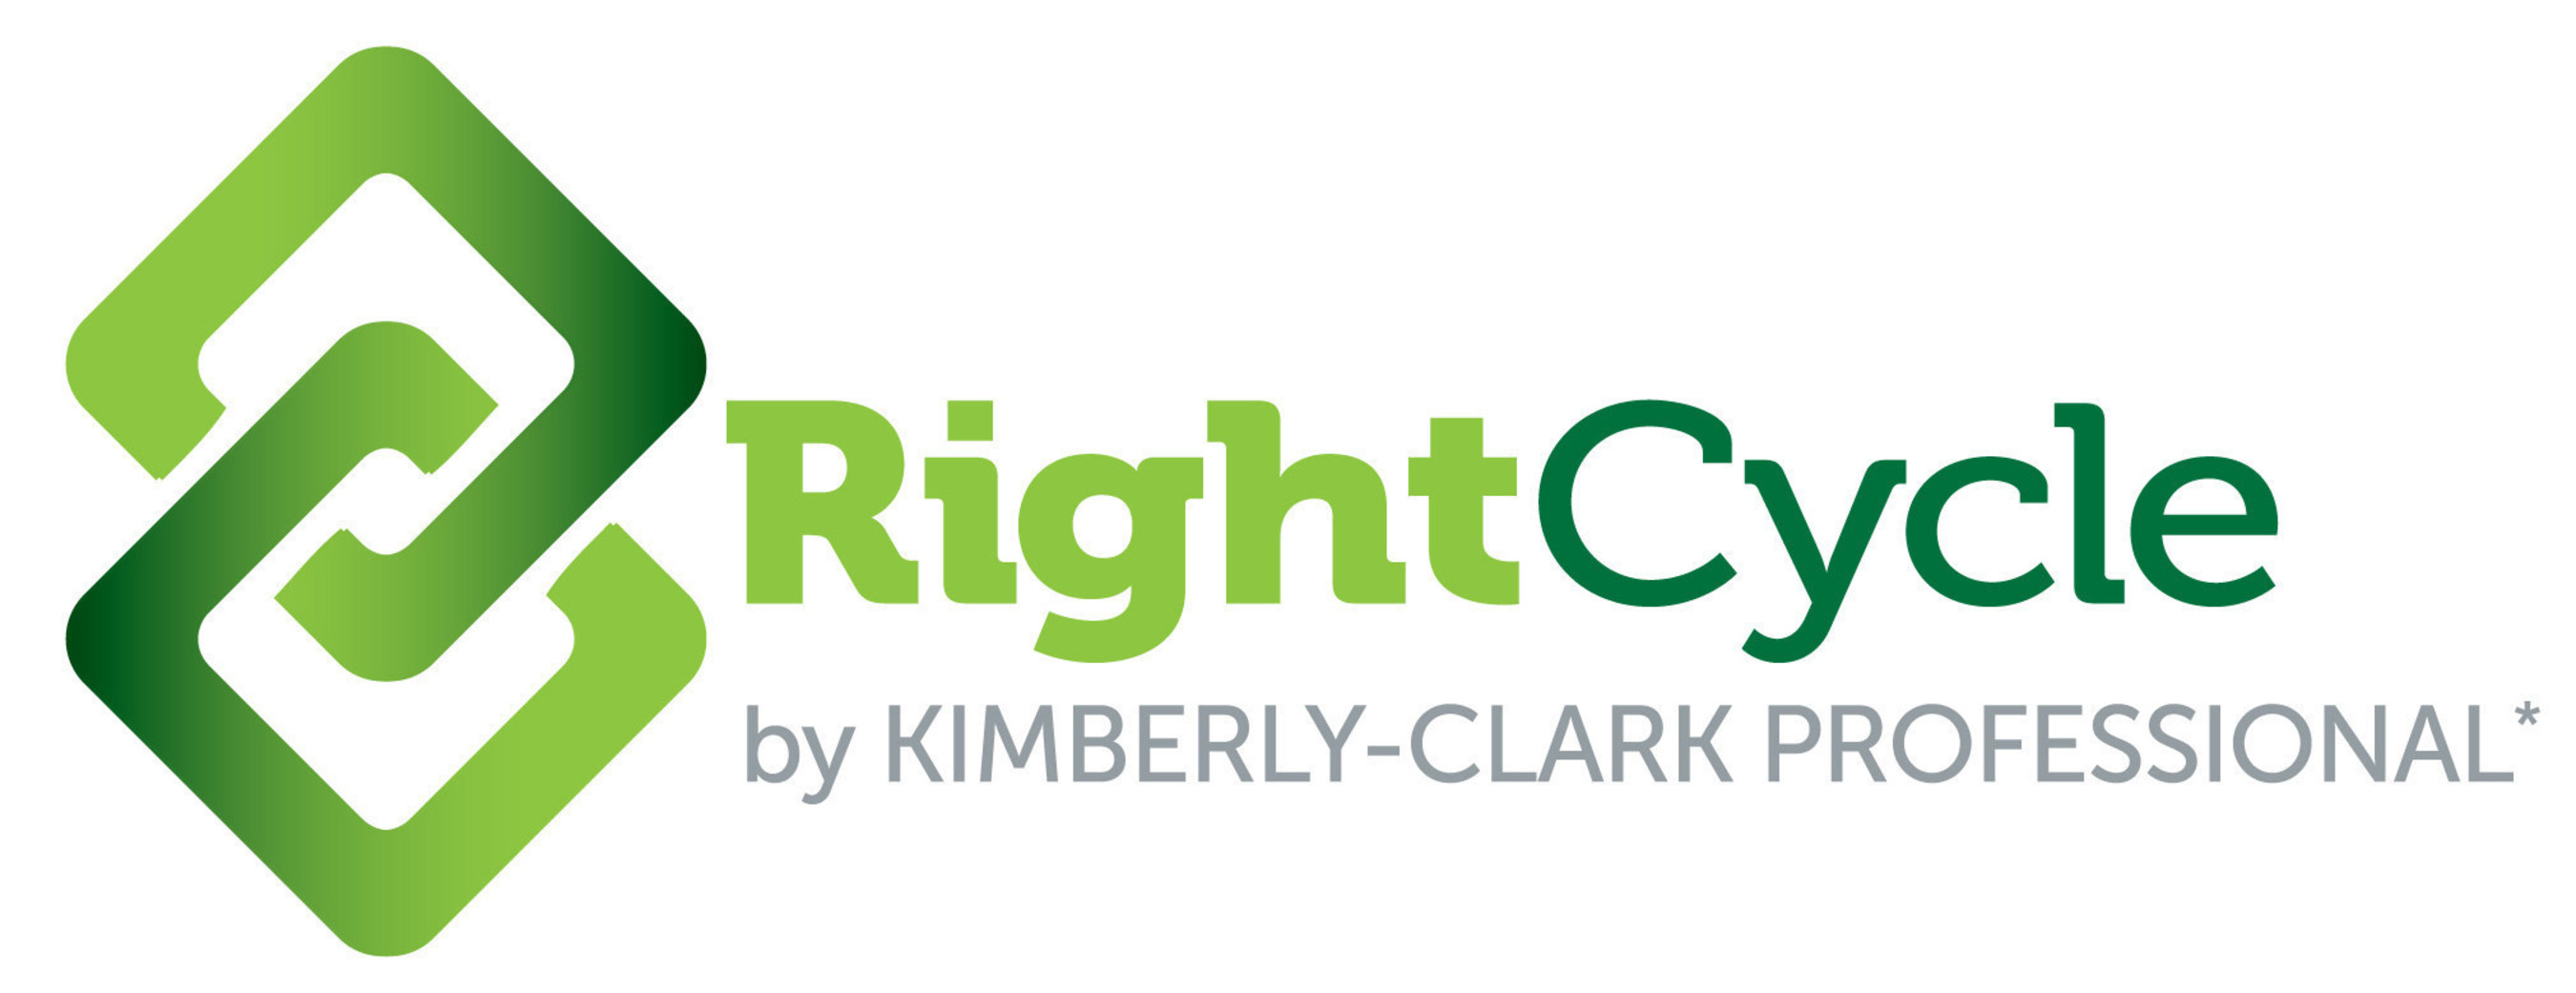 Roswell Recycling Center >> Innovative Kimberly-Clark Recycling Program Helps Two ...